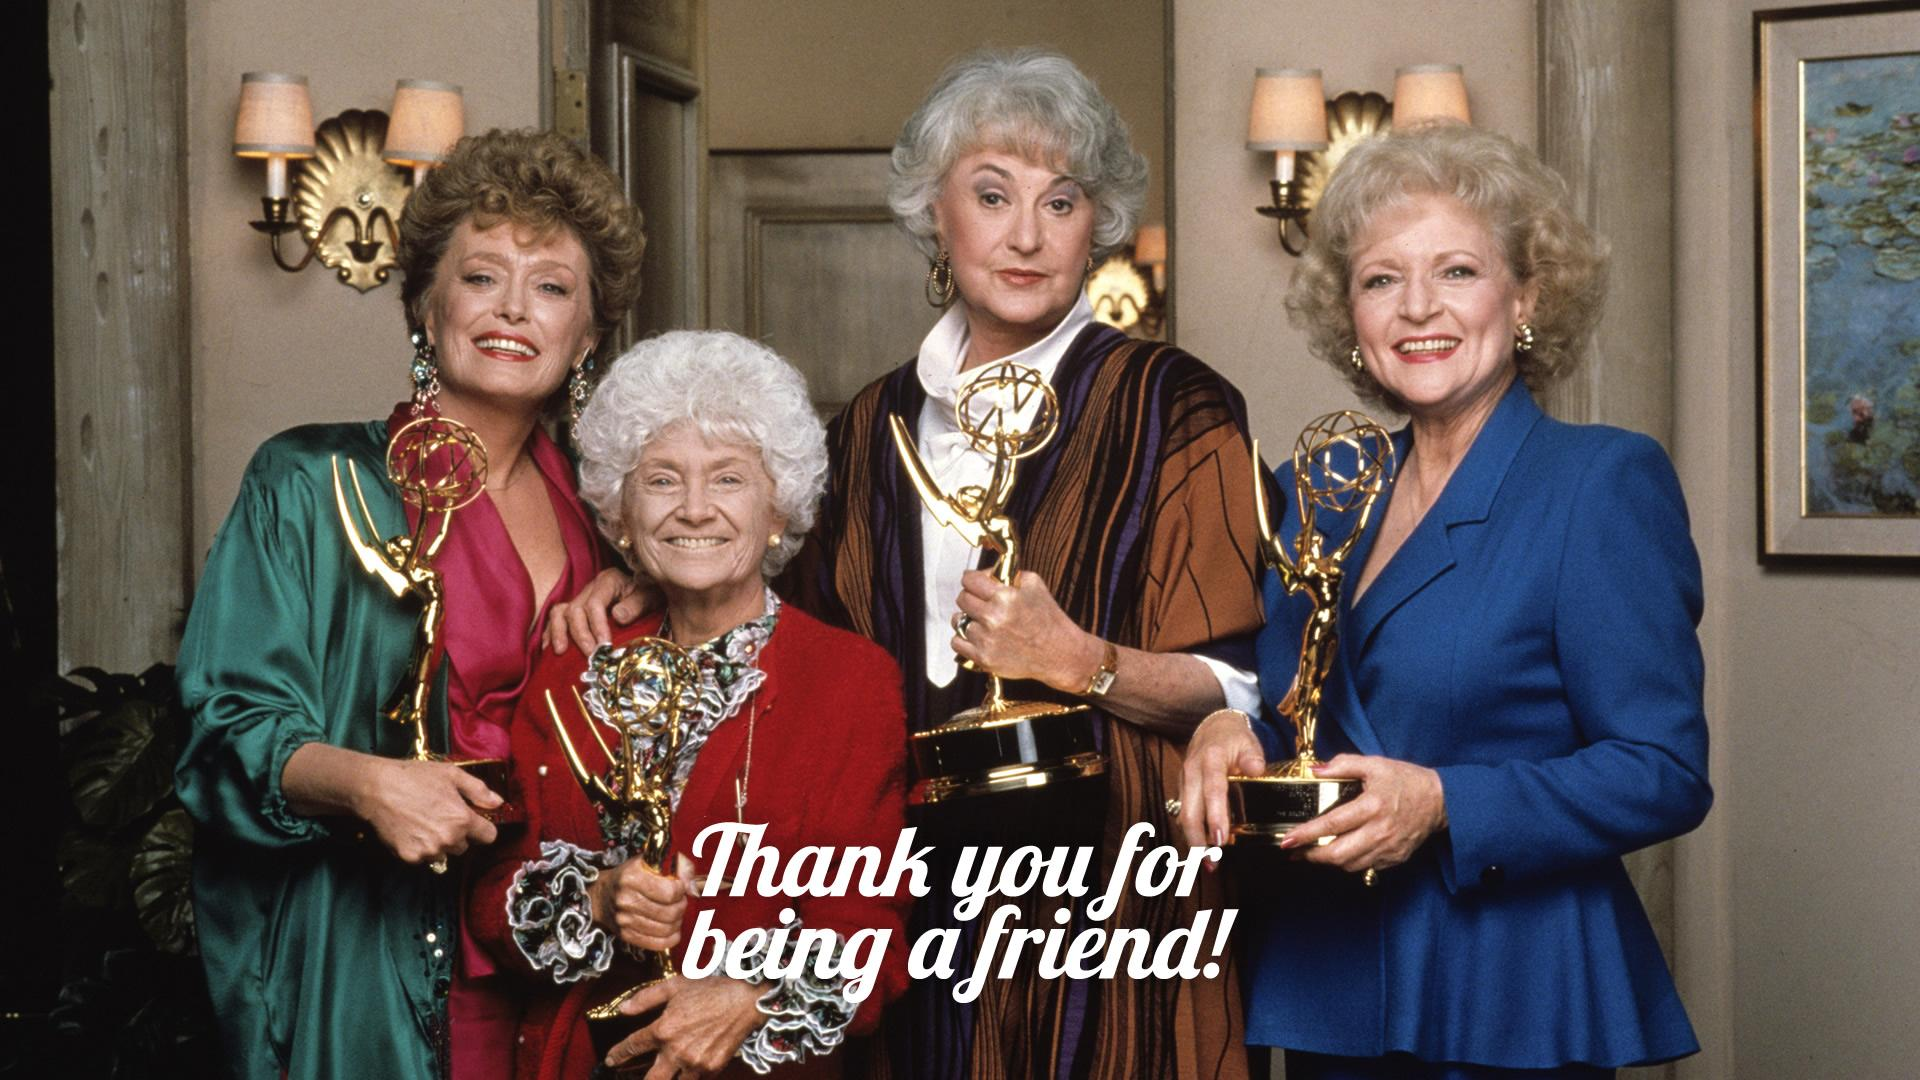 The Golden Girls Cast with Awards HD Wallpapers » FullHDWpp